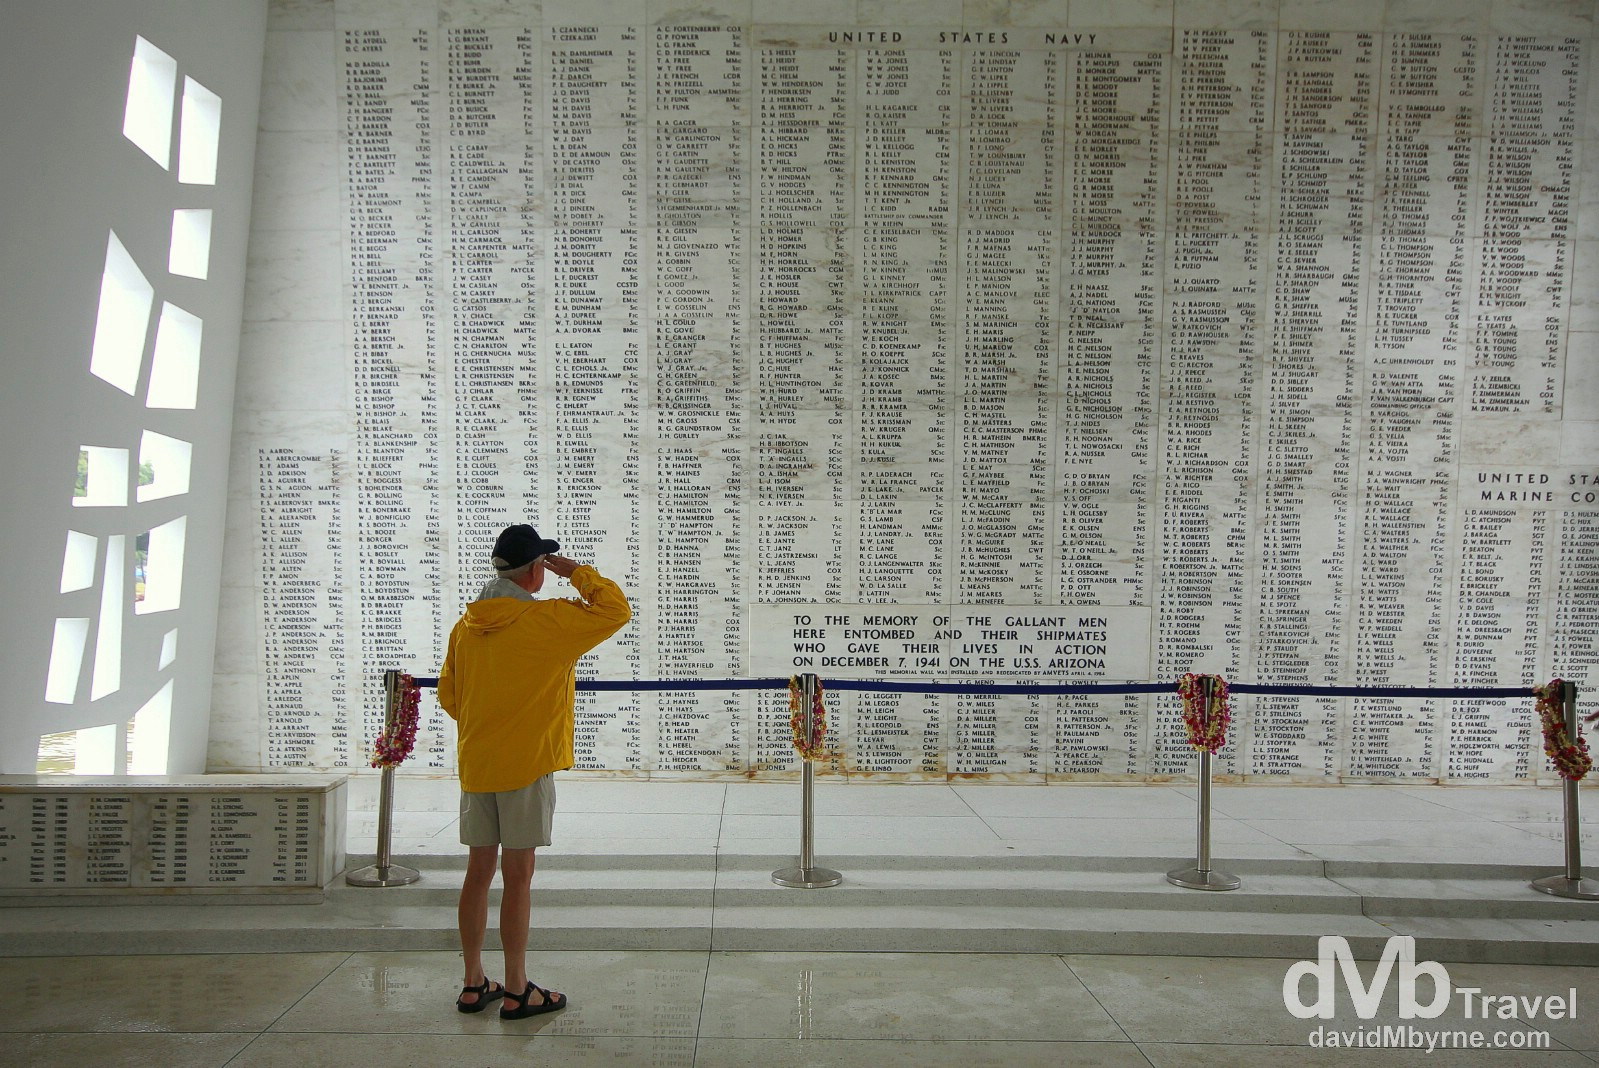 Saluting fallen comrades at the USS Arizona Memorial in Pearl Harbor, Oahu, Hawaii, USA. March 10th 2013.